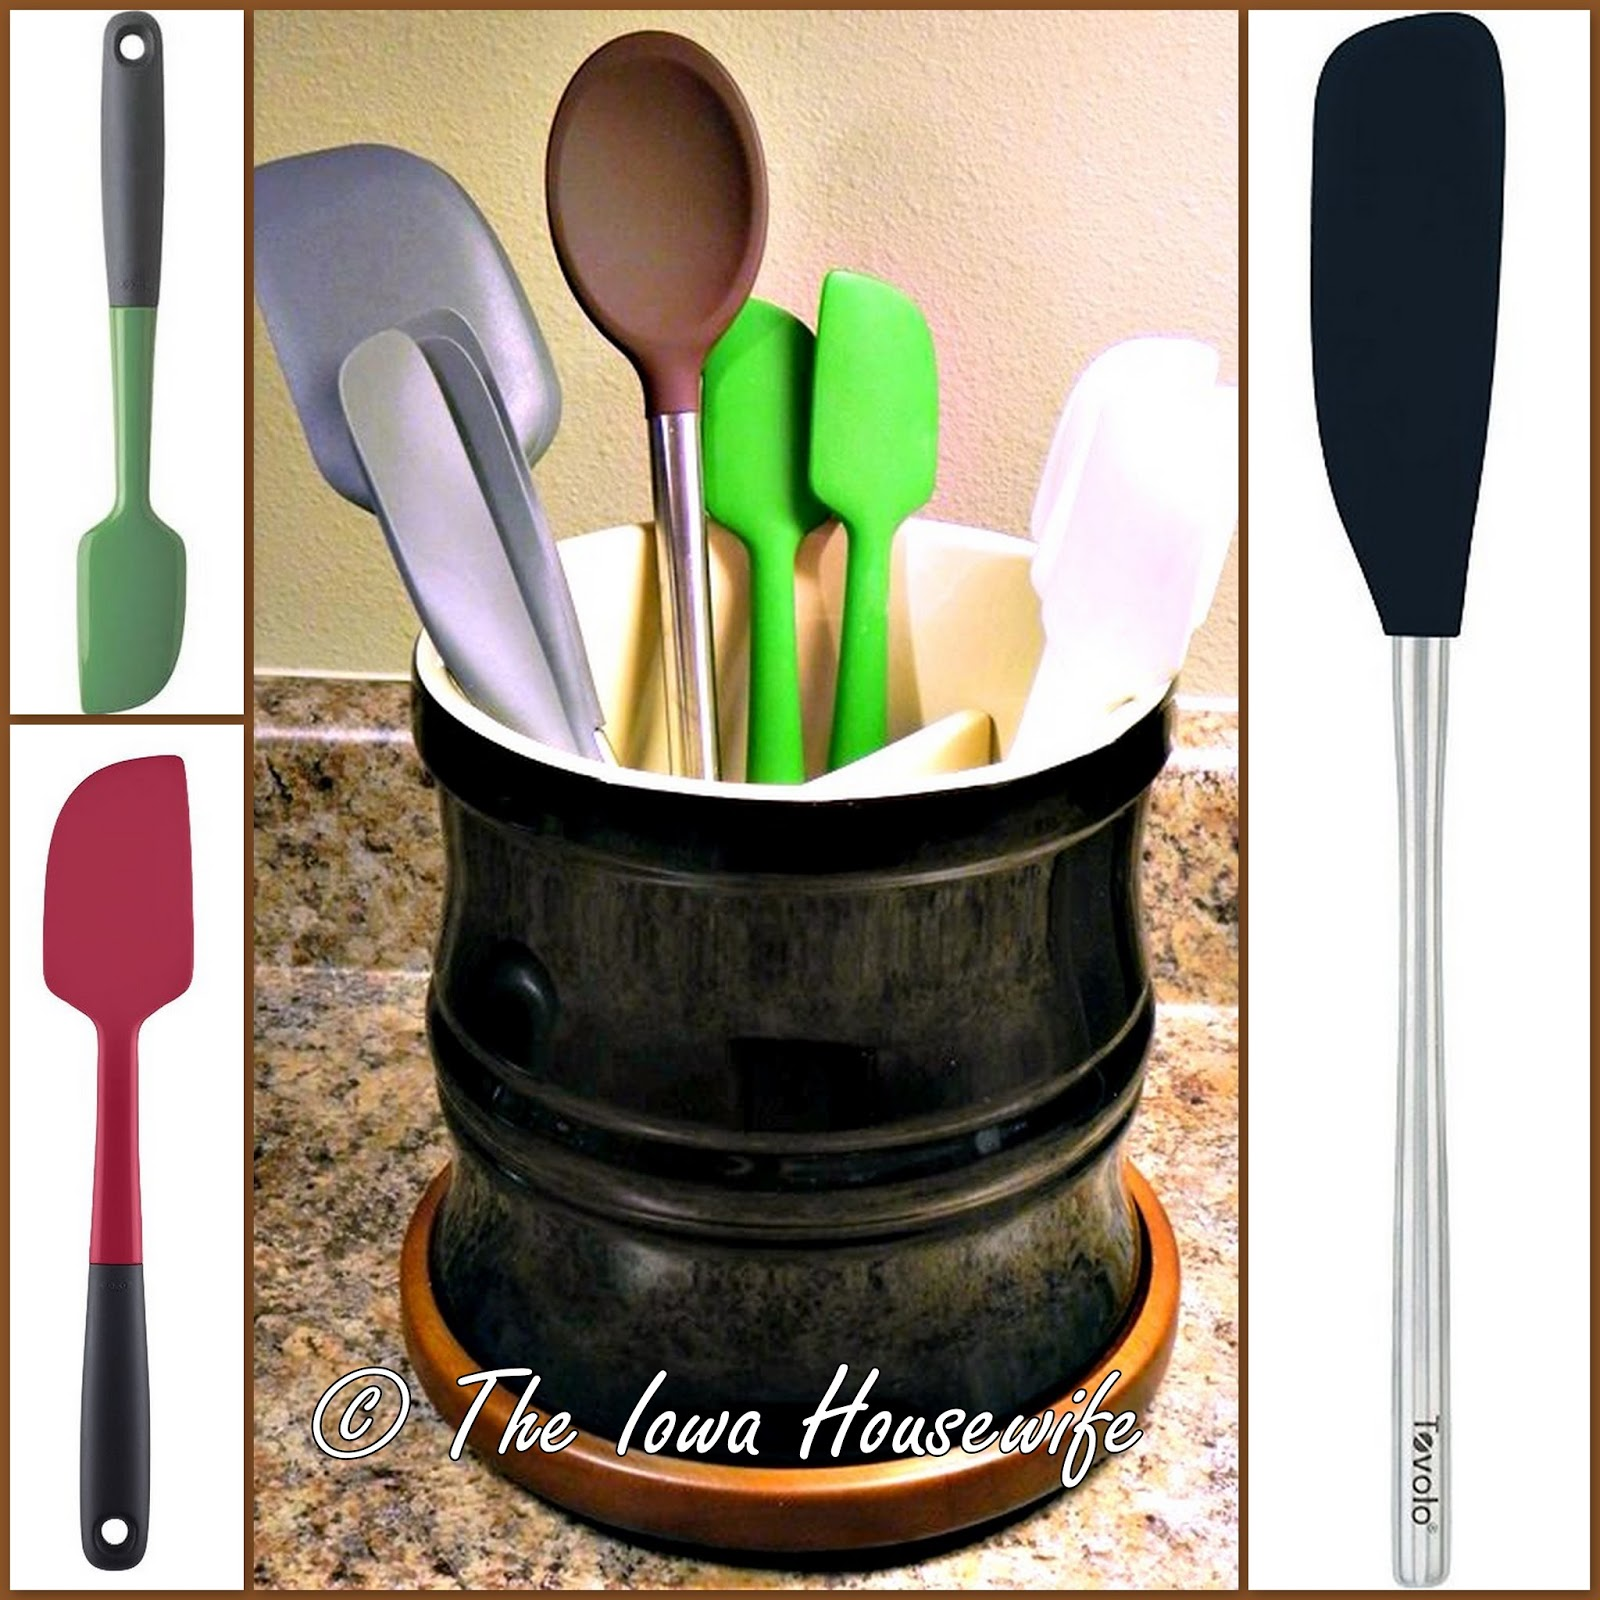 The Iowa Housewife: In the Kitchen...Scrapers, Spatulas ...